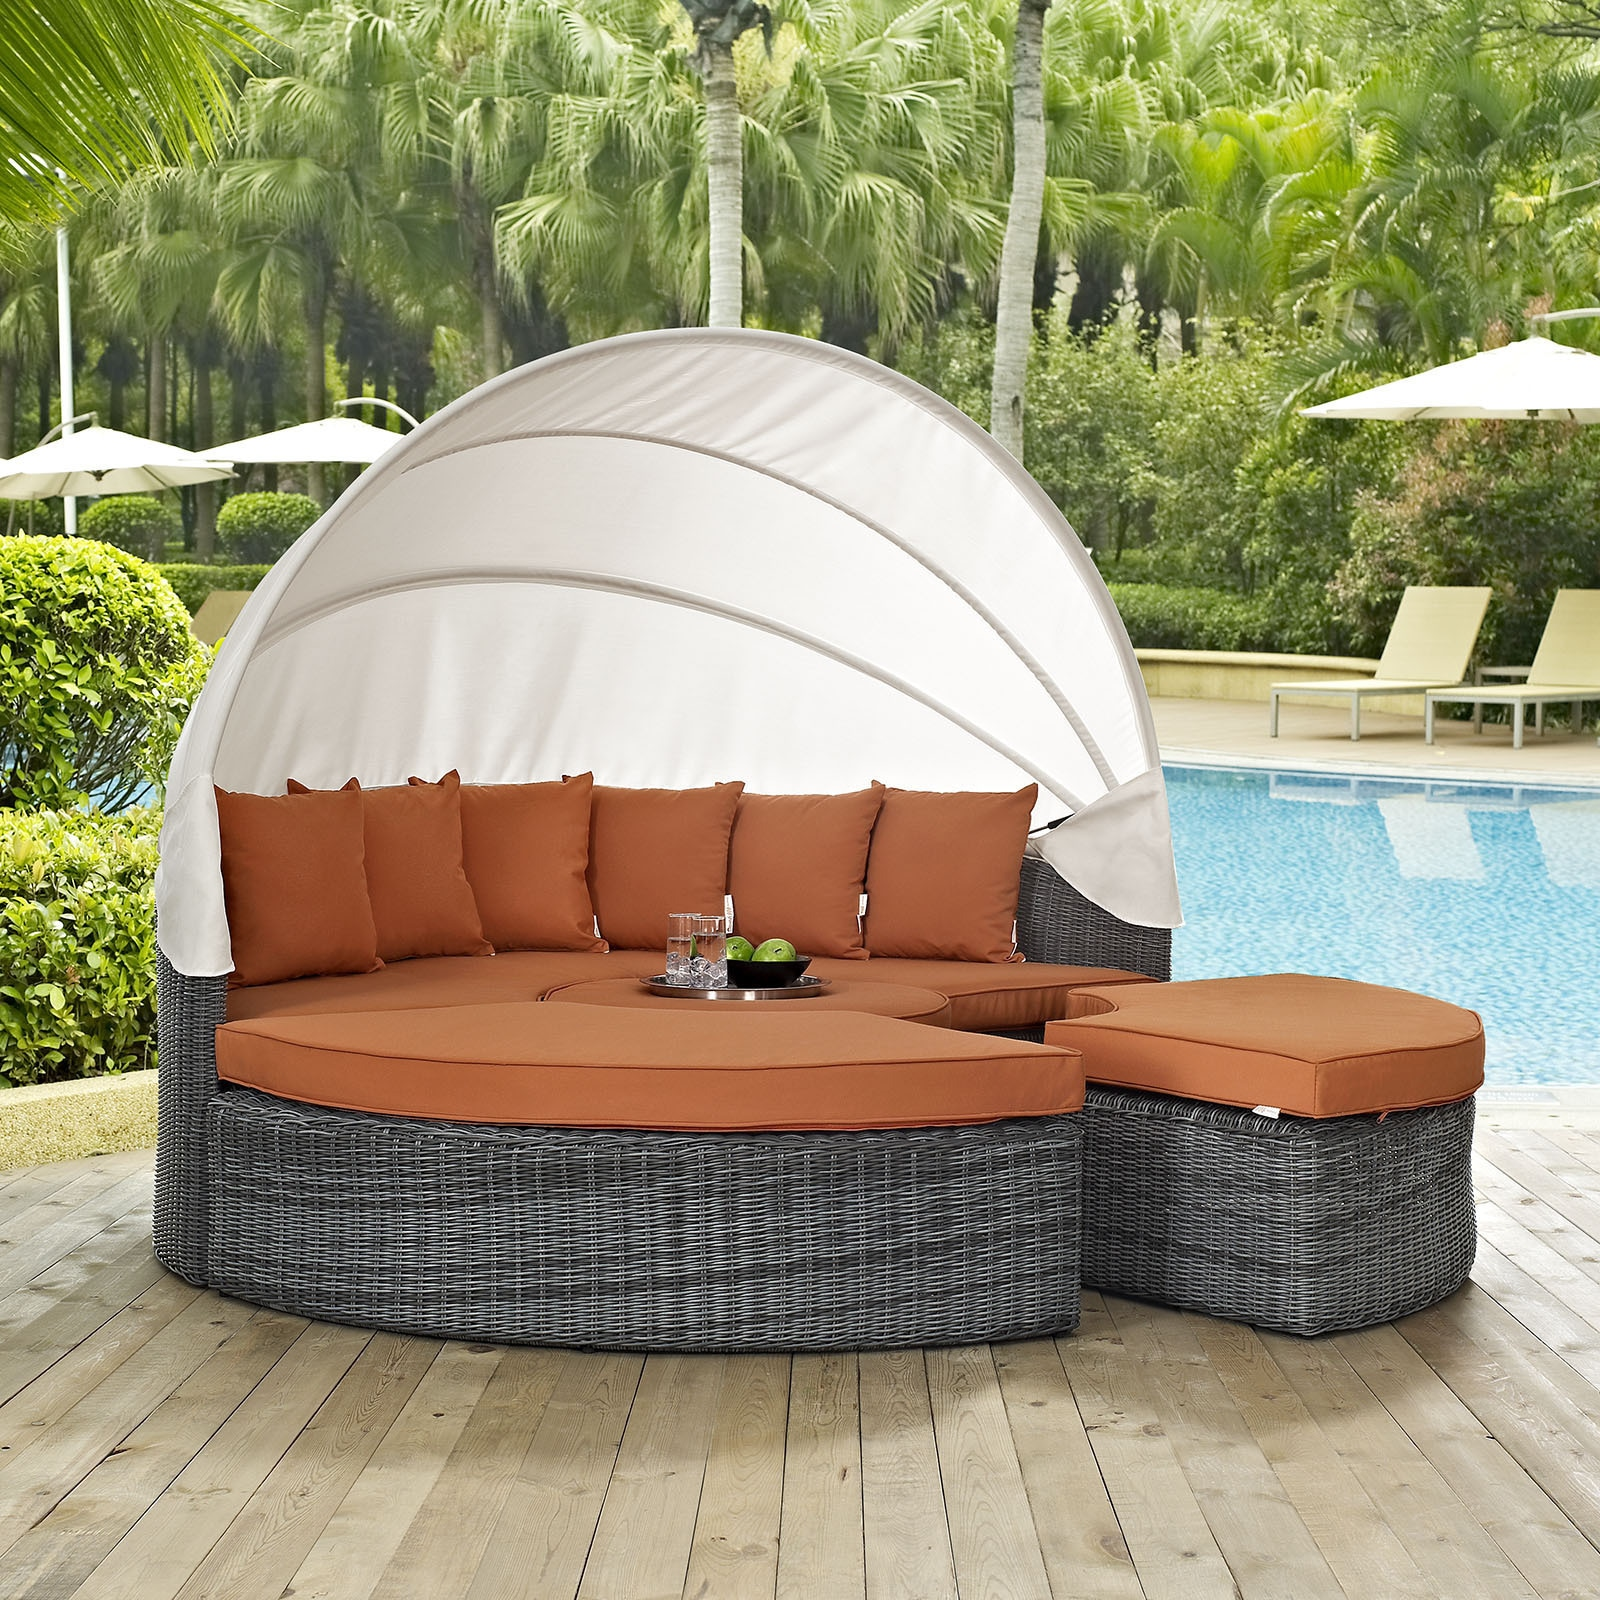 Shop Summon Canopy Outdoor Patio Daybed   Free Shipping Today    Overstock.com   11161395